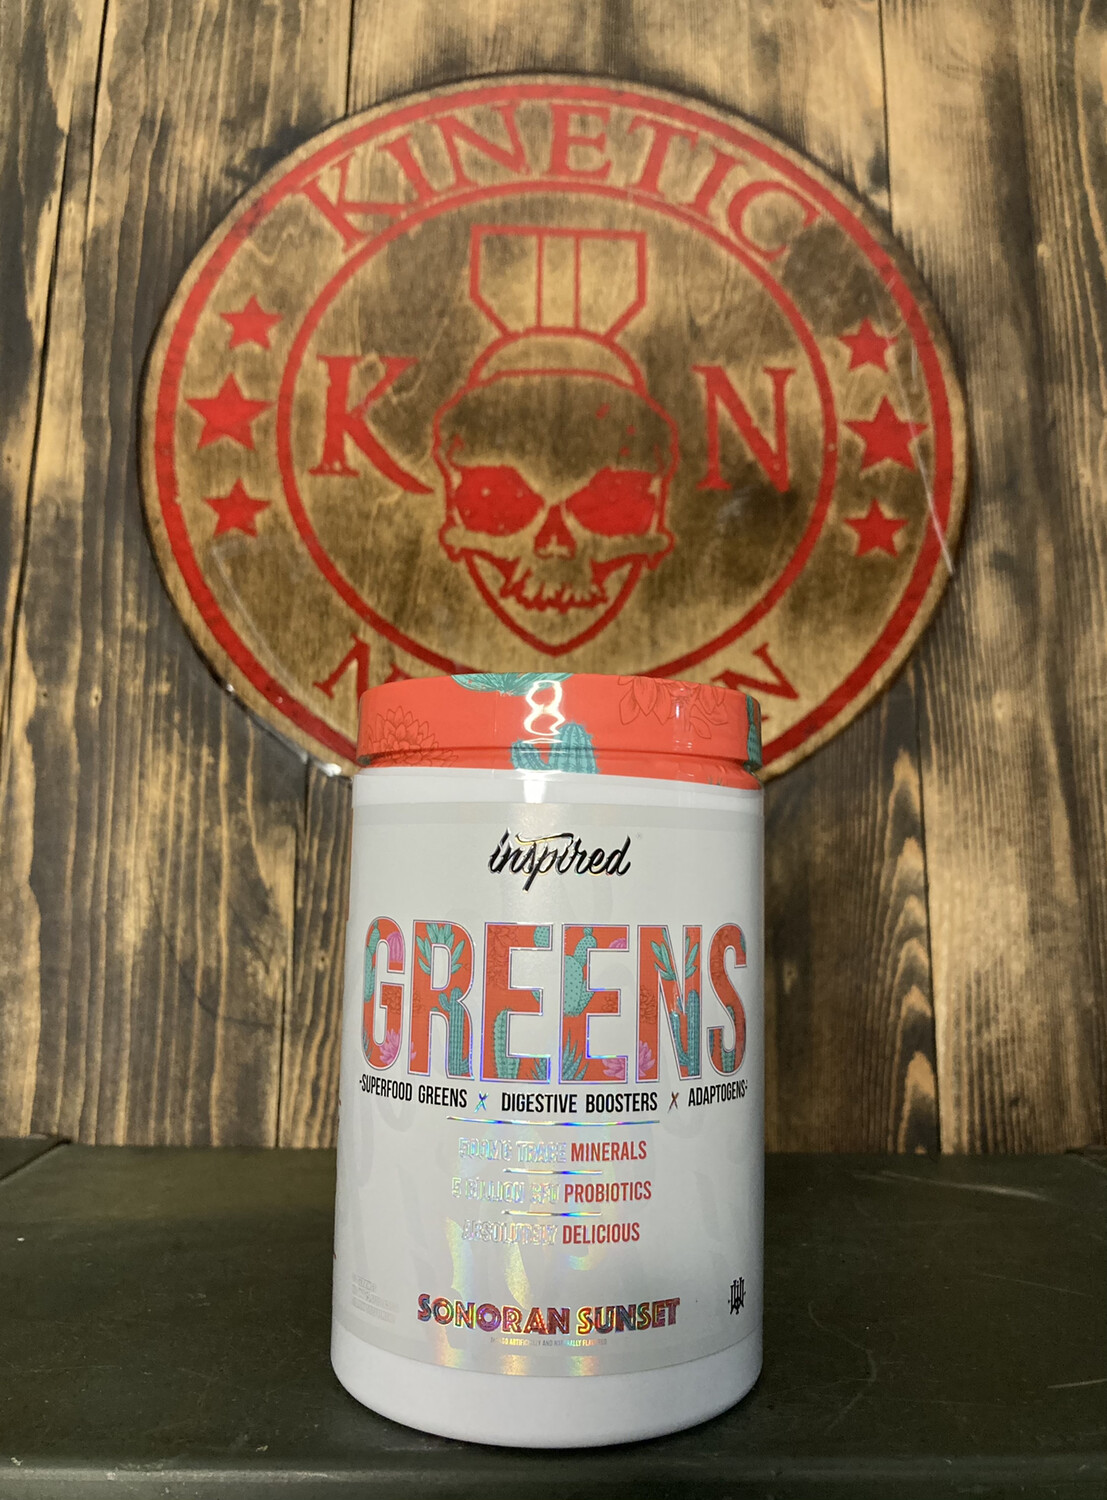 Inspired, Greens, 30 Servings, Sonoran Sunset